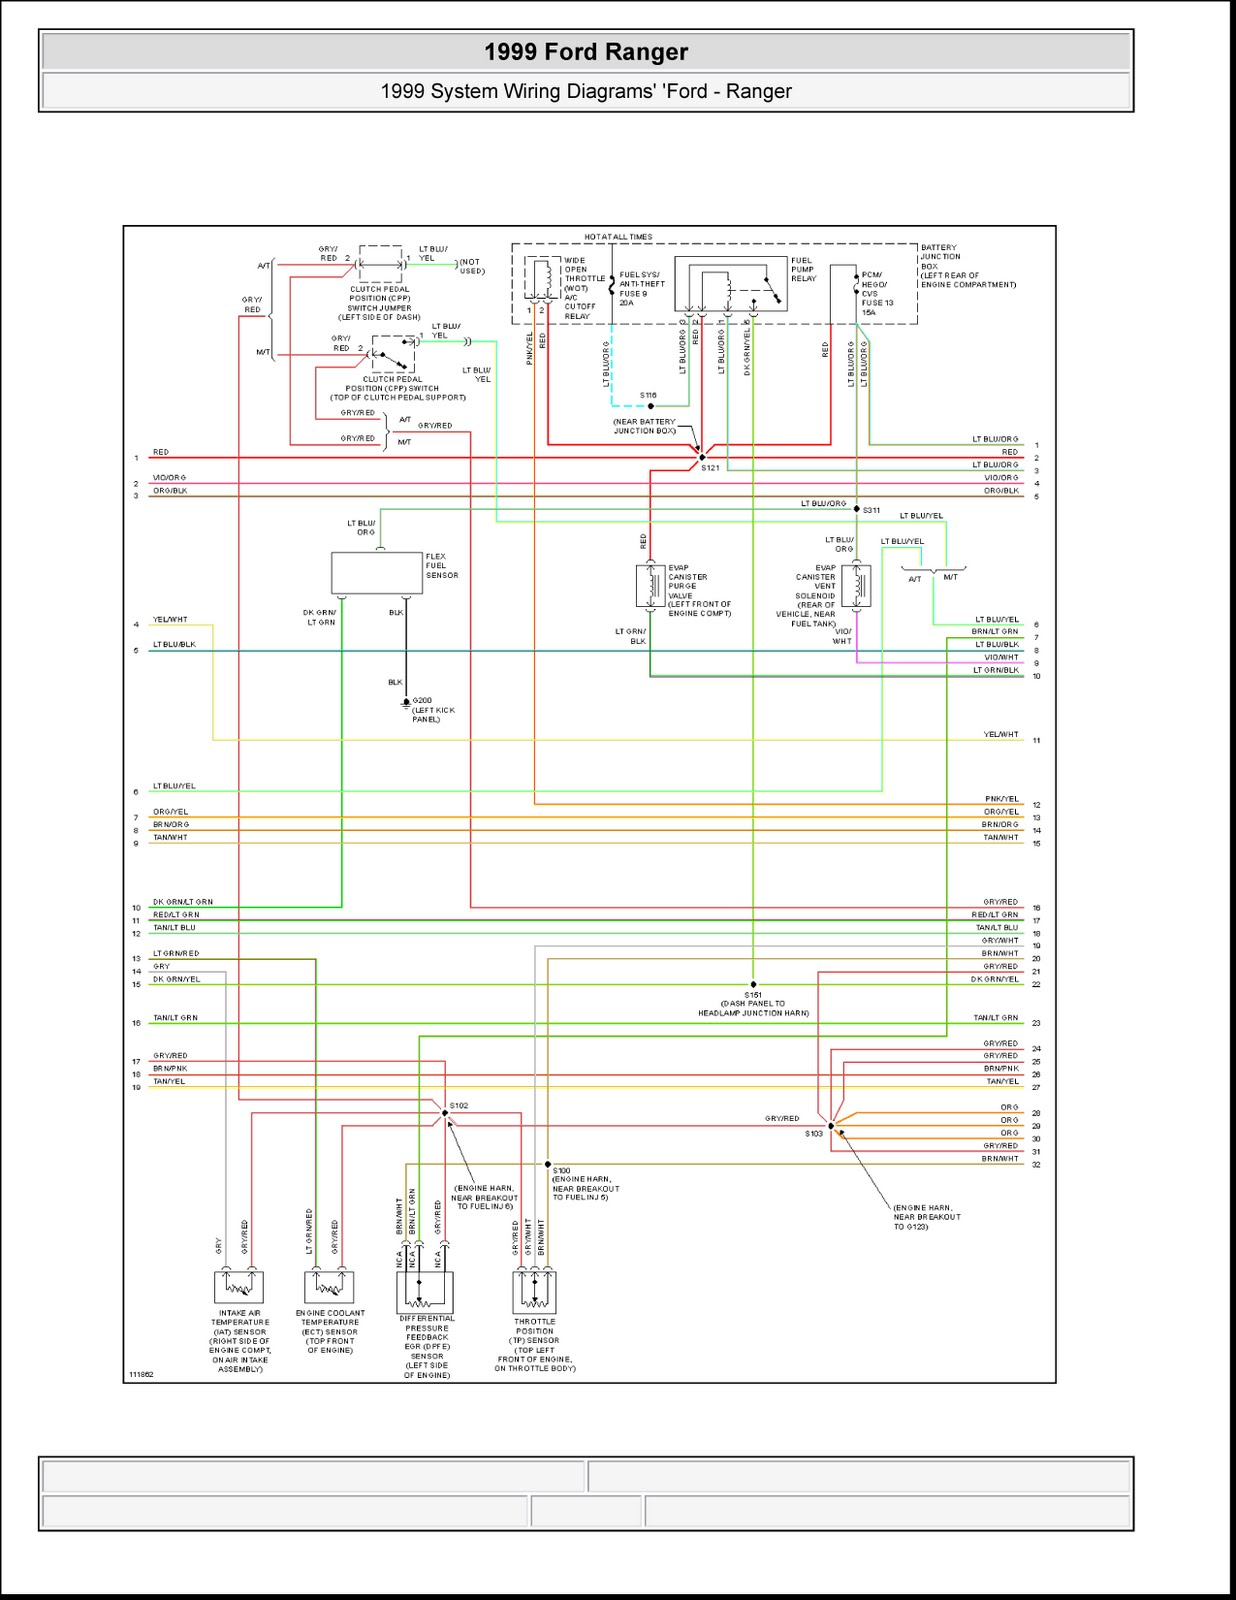 toyota headlight wiring diagram color codes | wiring diagram toyota kzn185 wiring diagram toyota hilux wiring diagram wiring diagram - autoscout24